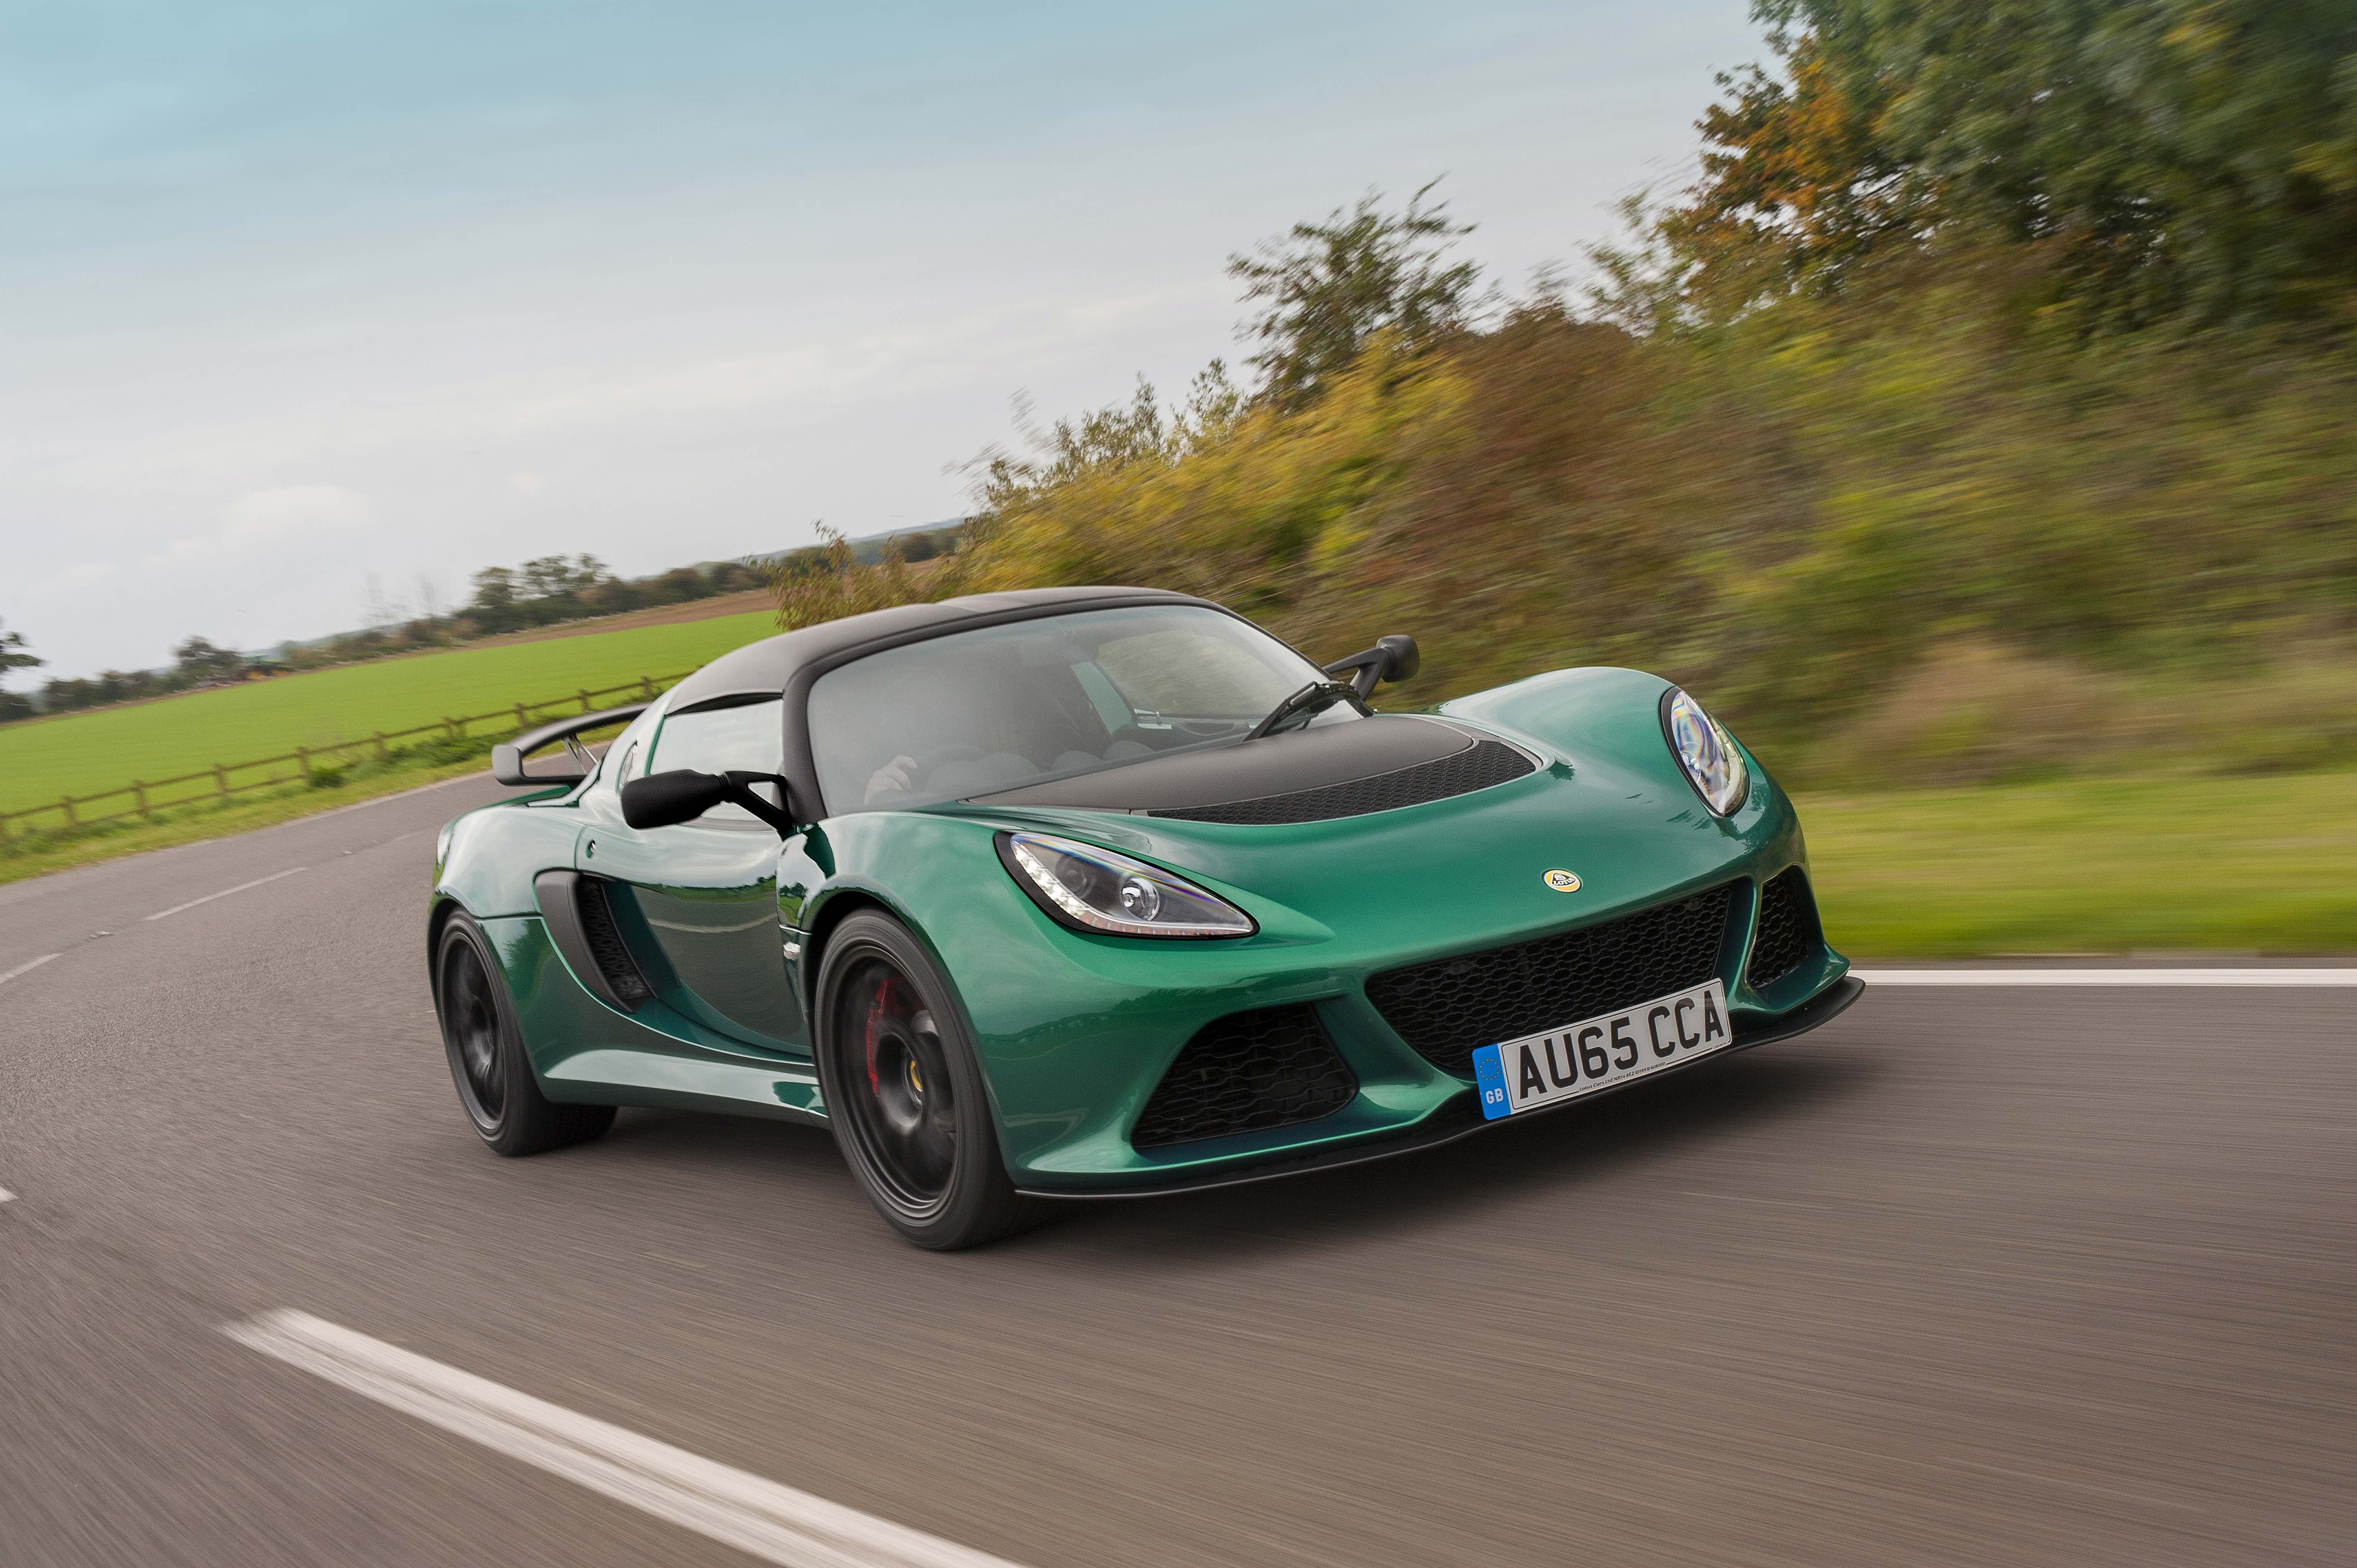 Lotus Elise 0 60 >> Lotus Exige Sport 350 Review Prices Specs And 0 60 Time